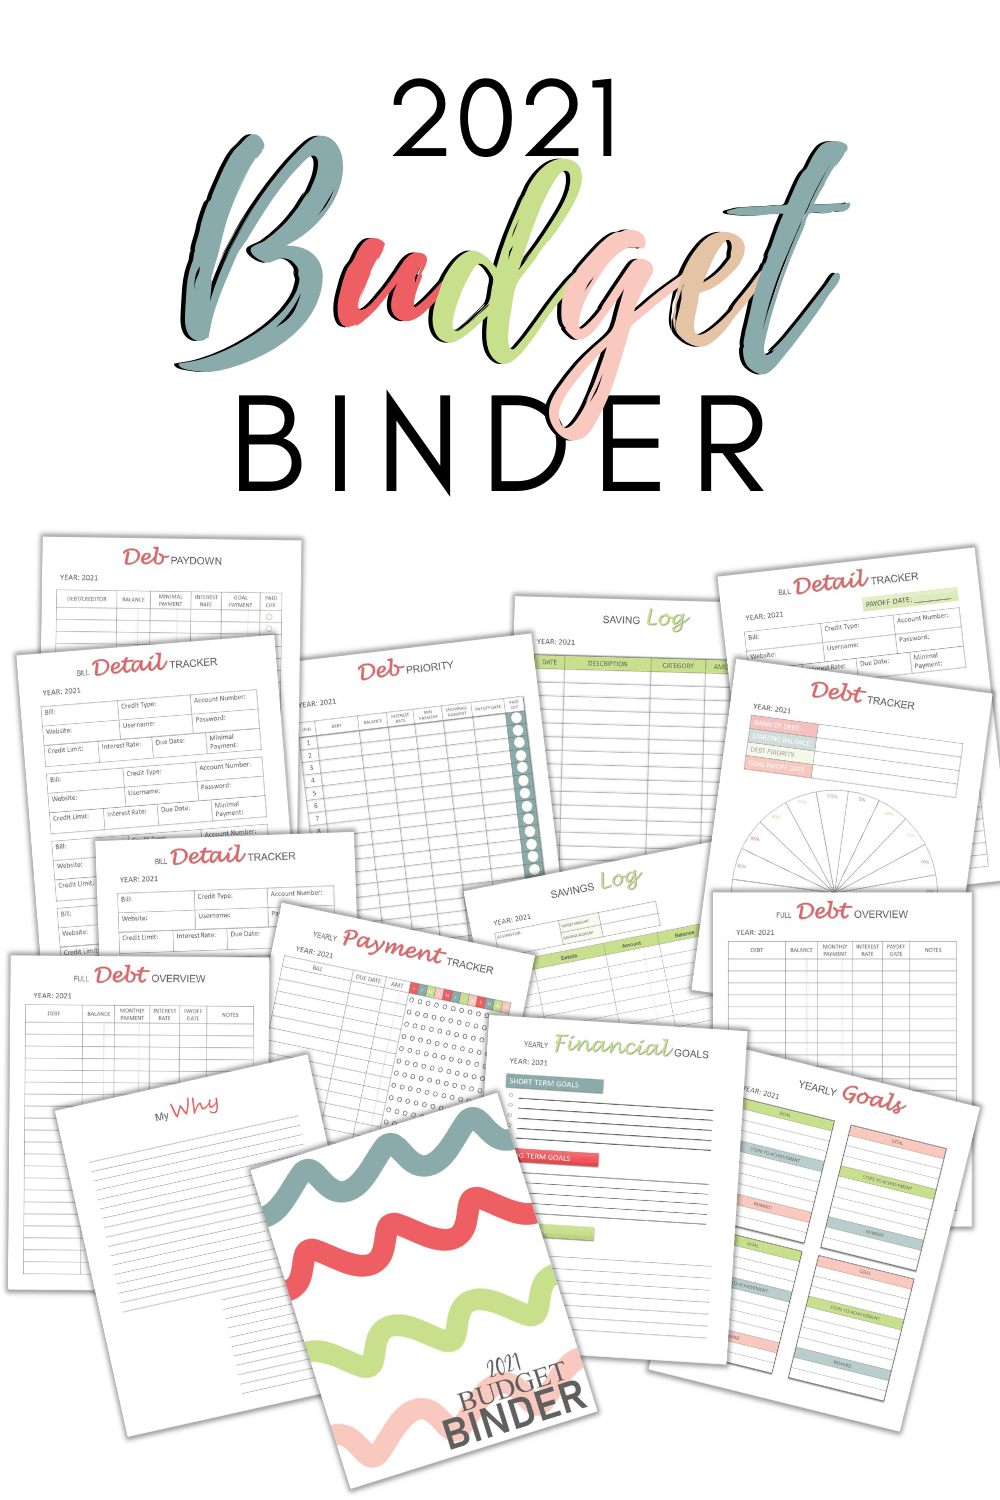 Get our best selling tool, the 2021 budget binder and start your budgeting adventures. via @mystayathome